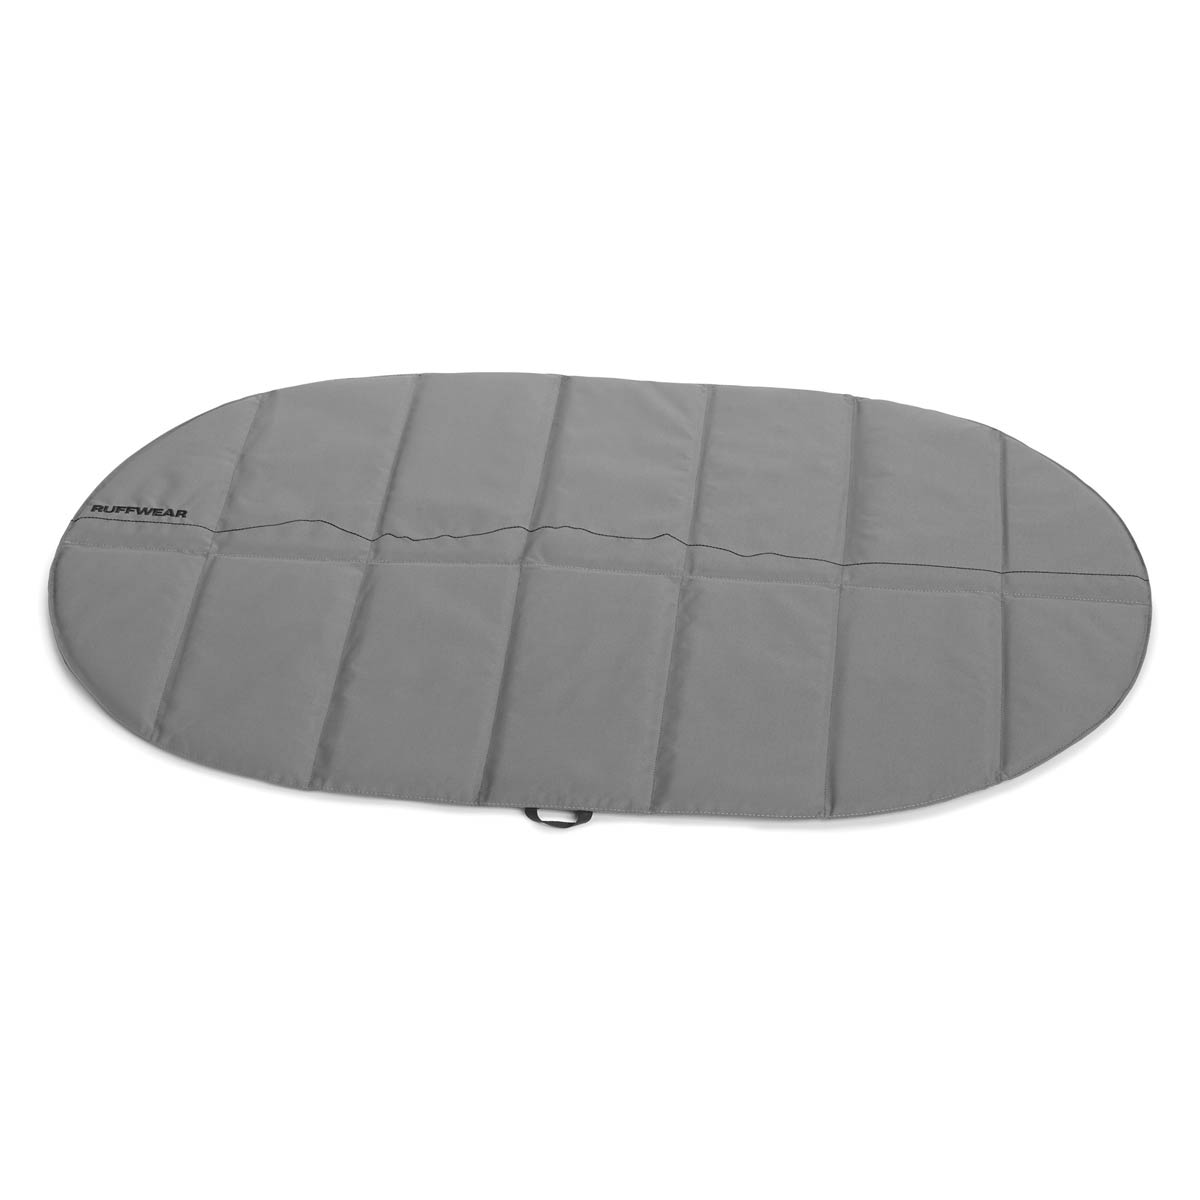 Highlands Pad Dog Bed by RuffWear - Granite Gray